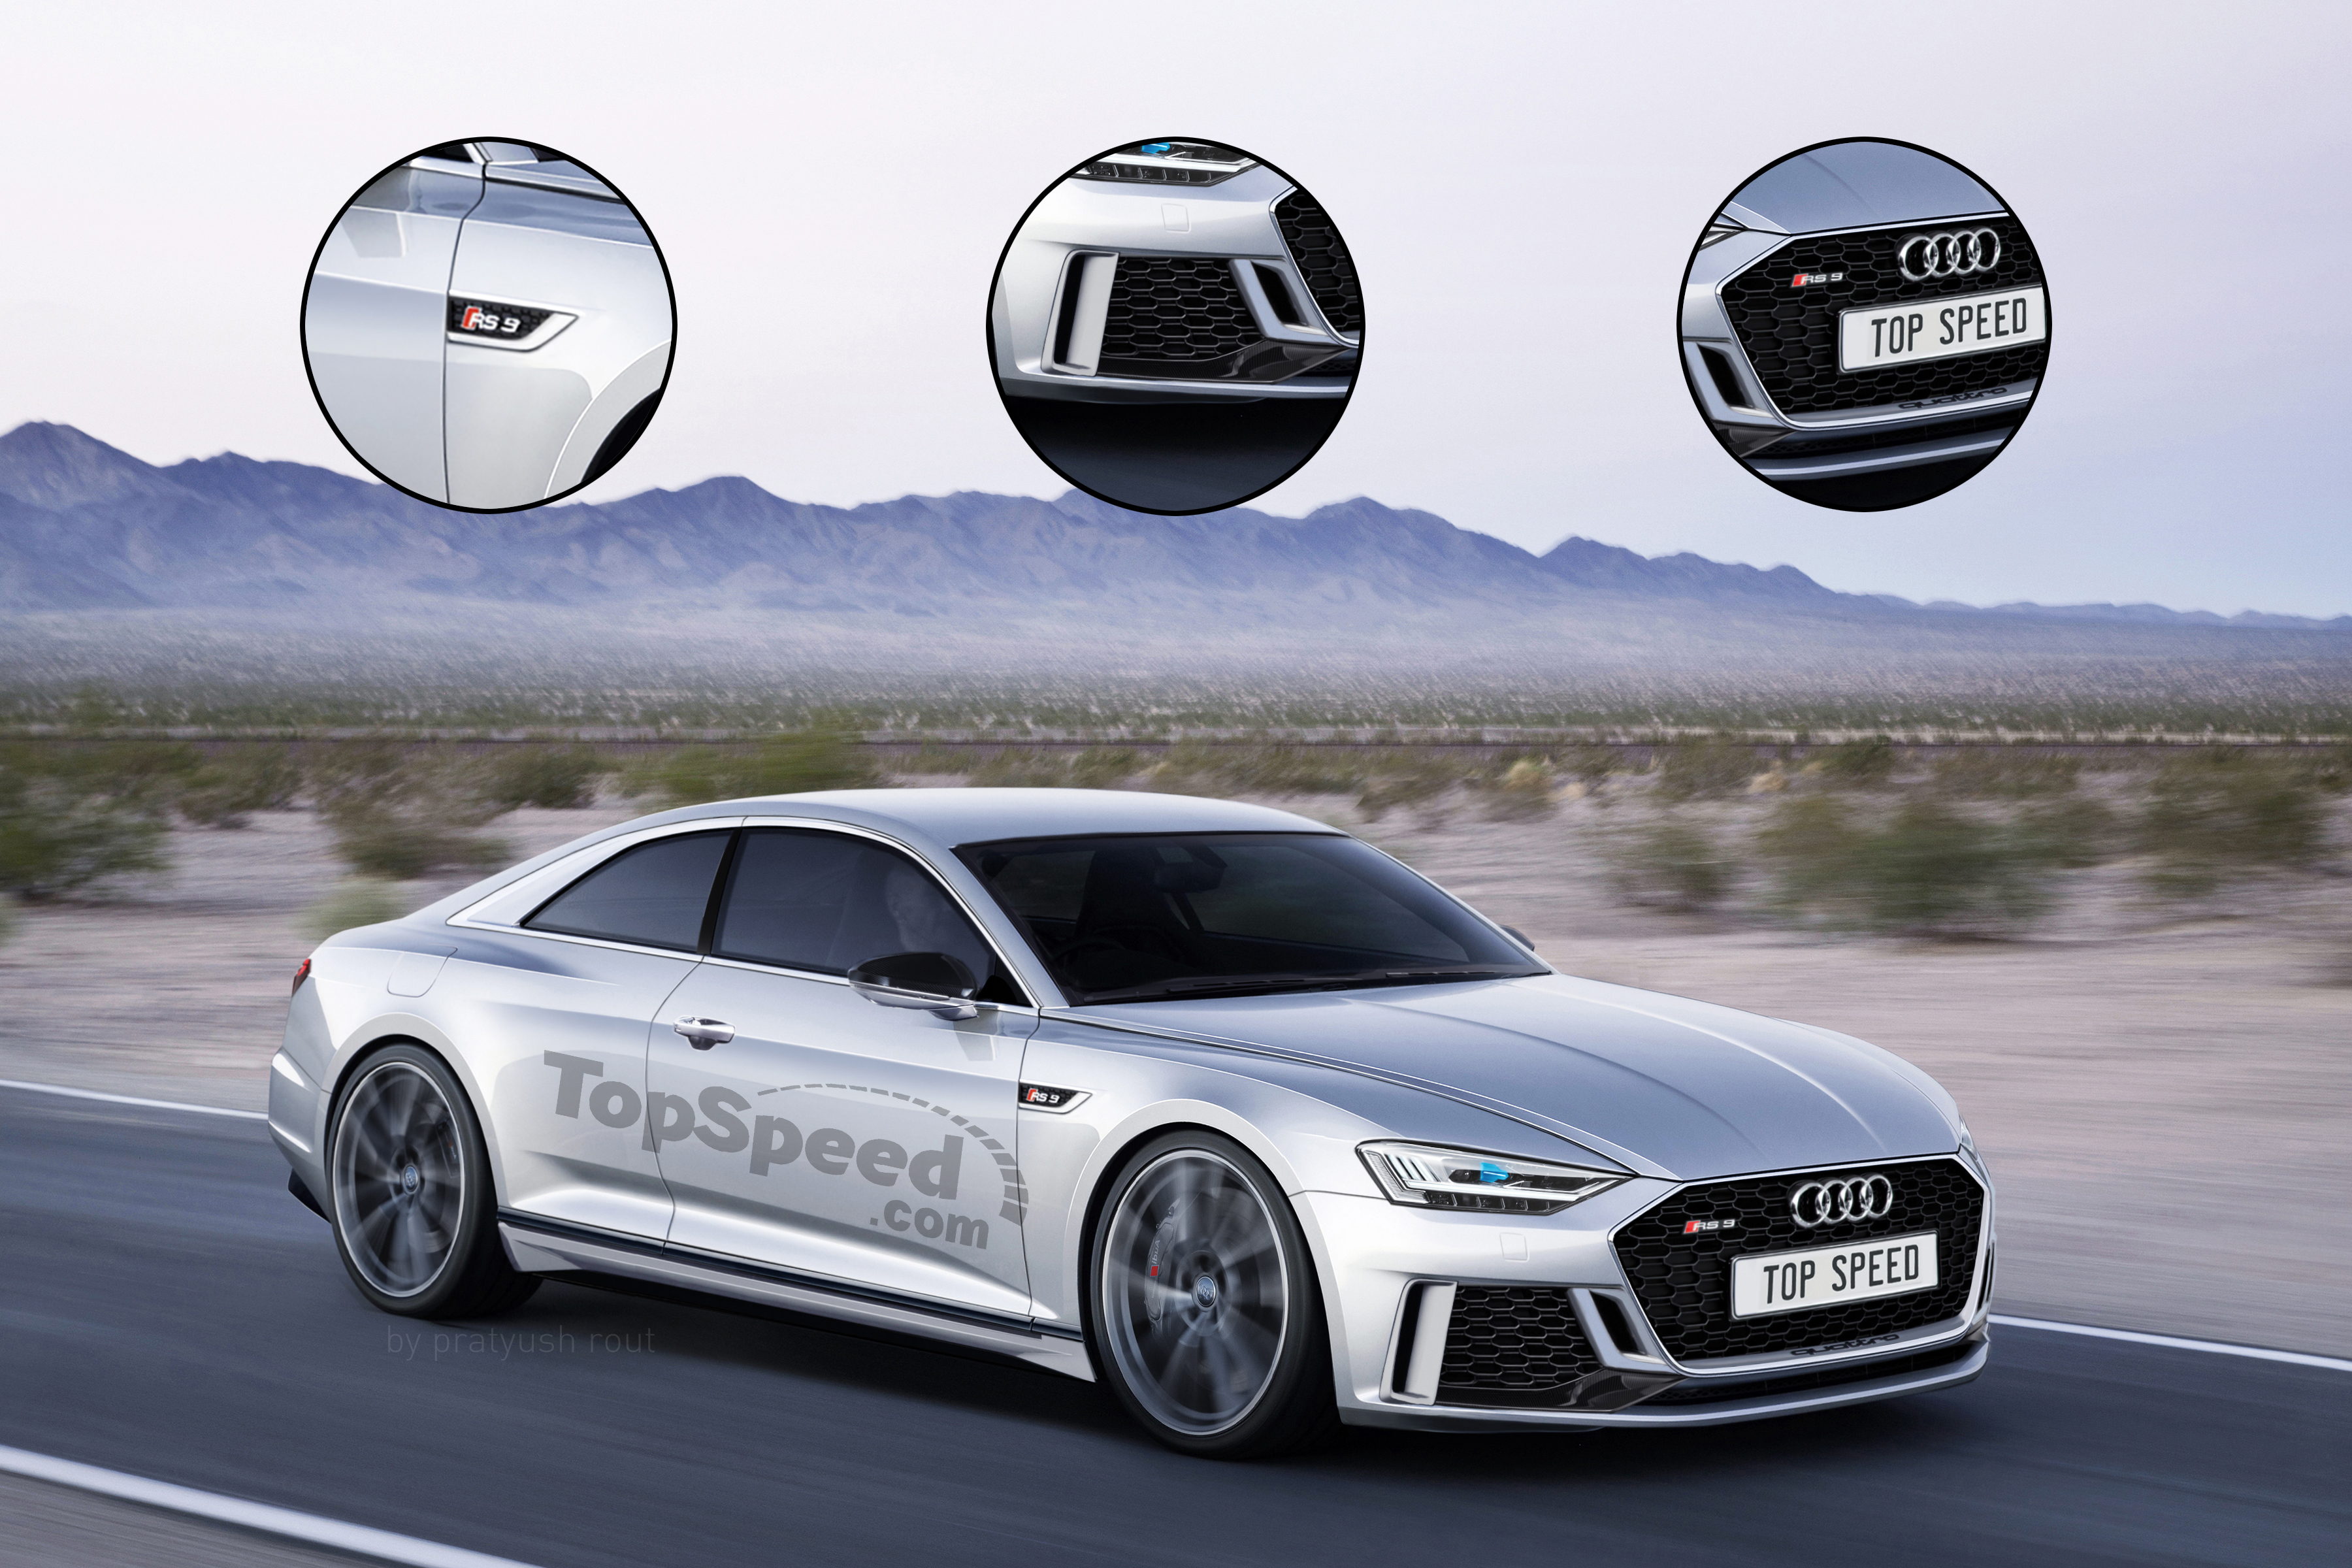 2019 Audi Rs9 Coupe Top Speed